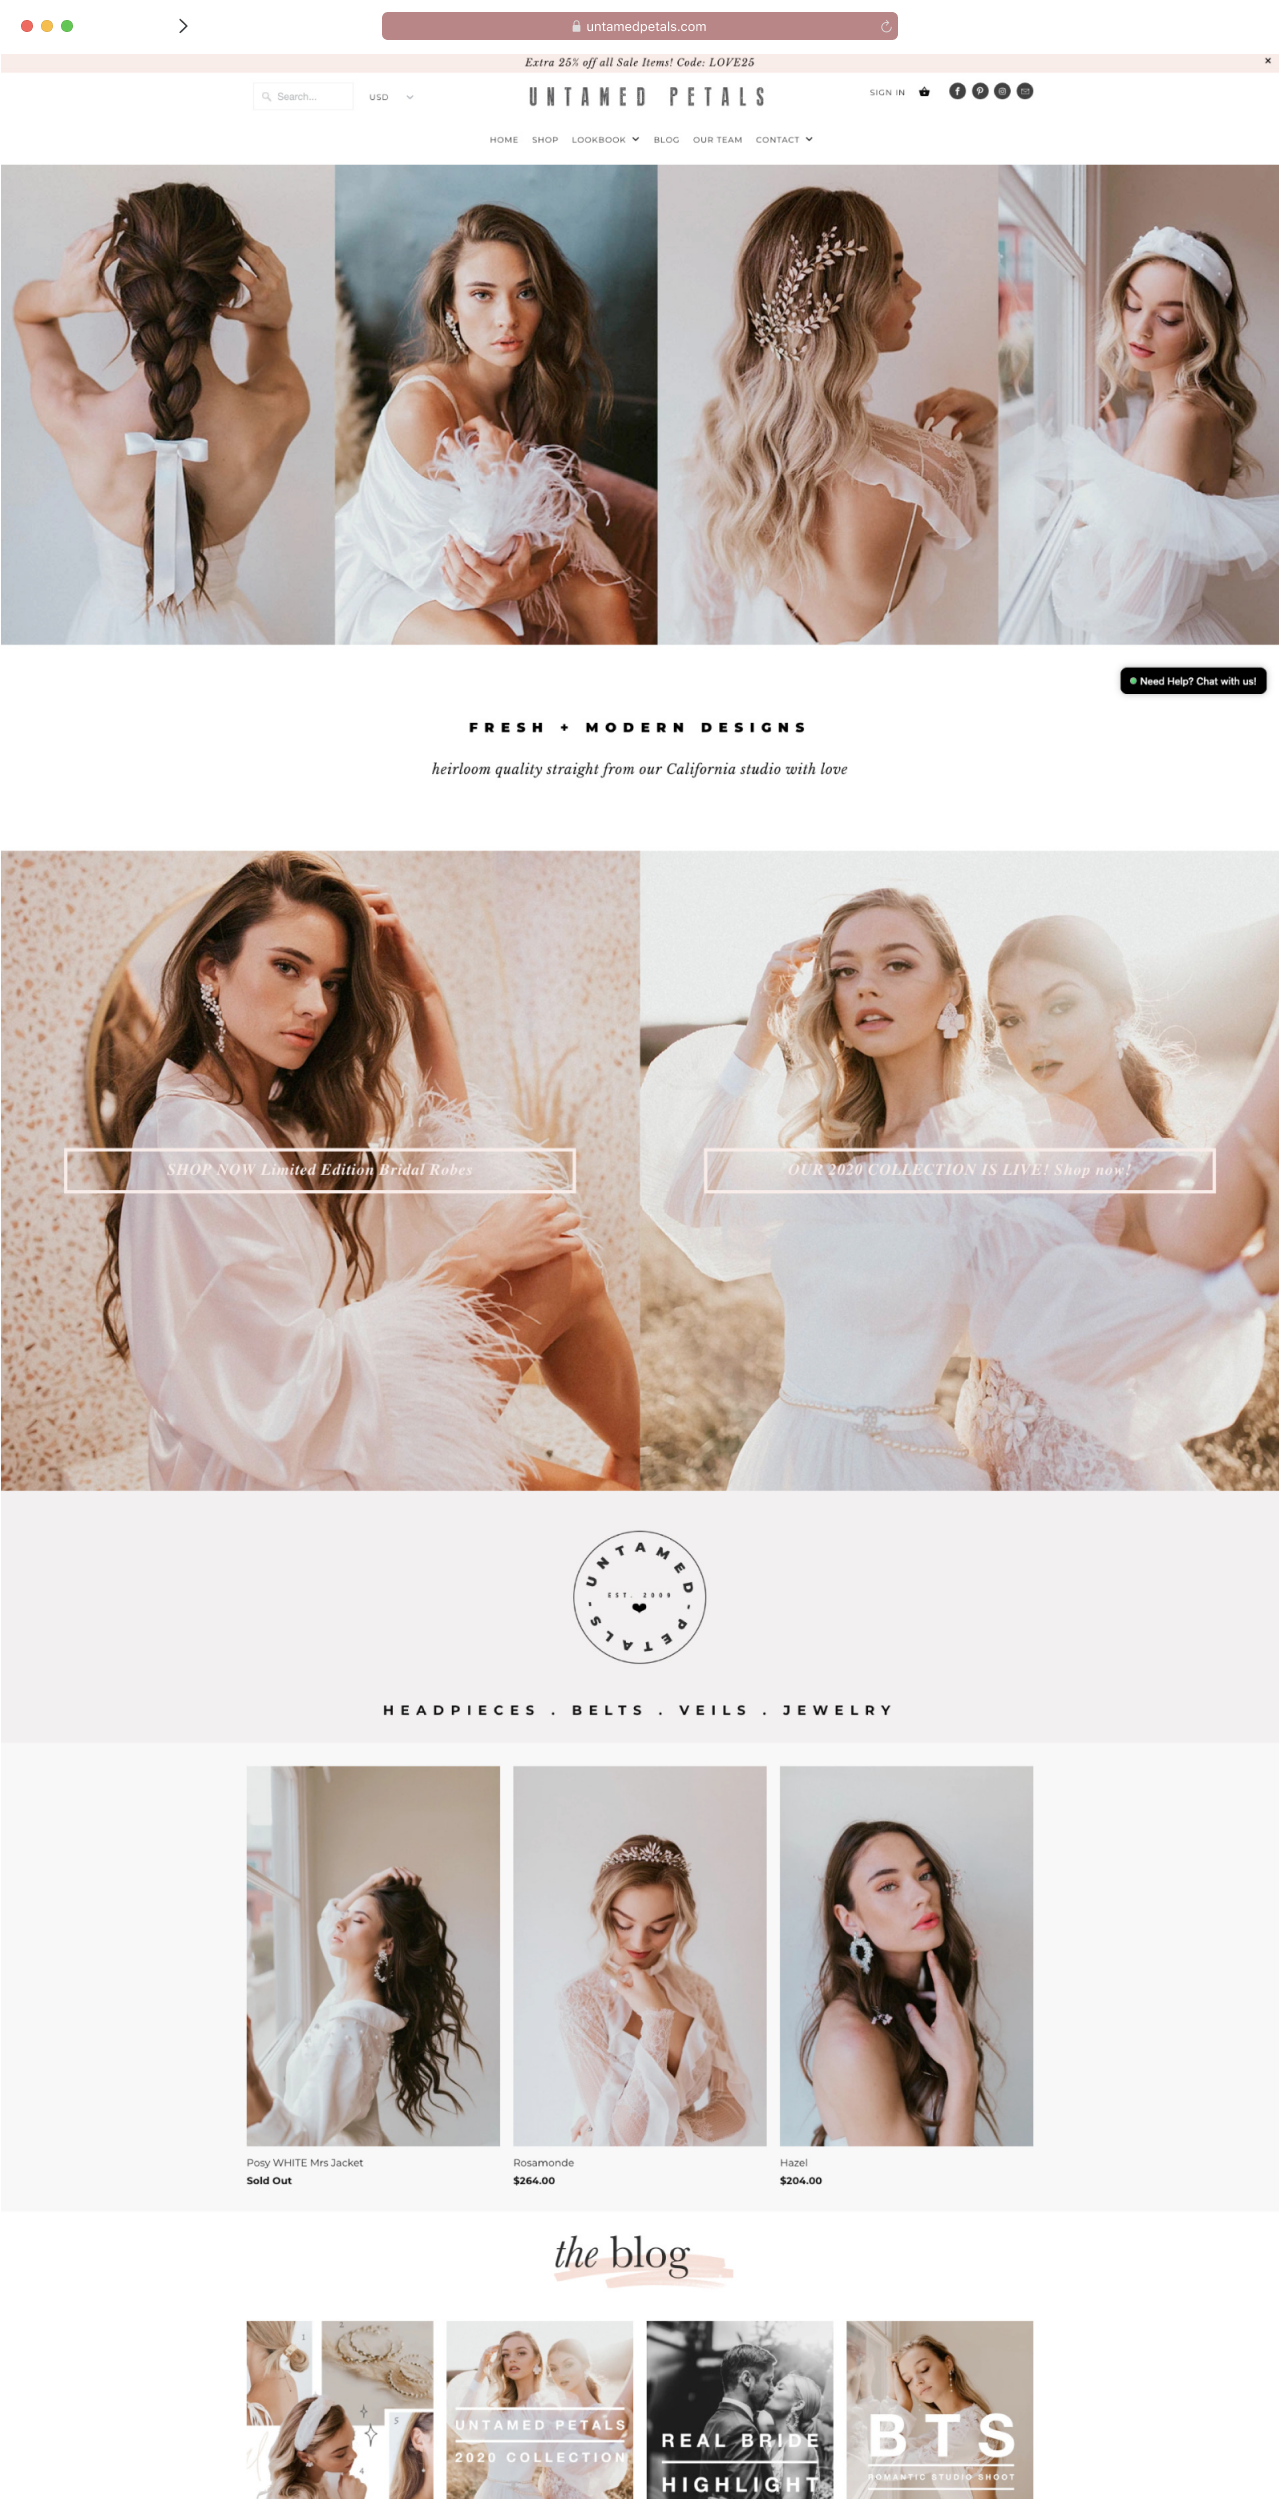 a mock up of a web page for untamed petals